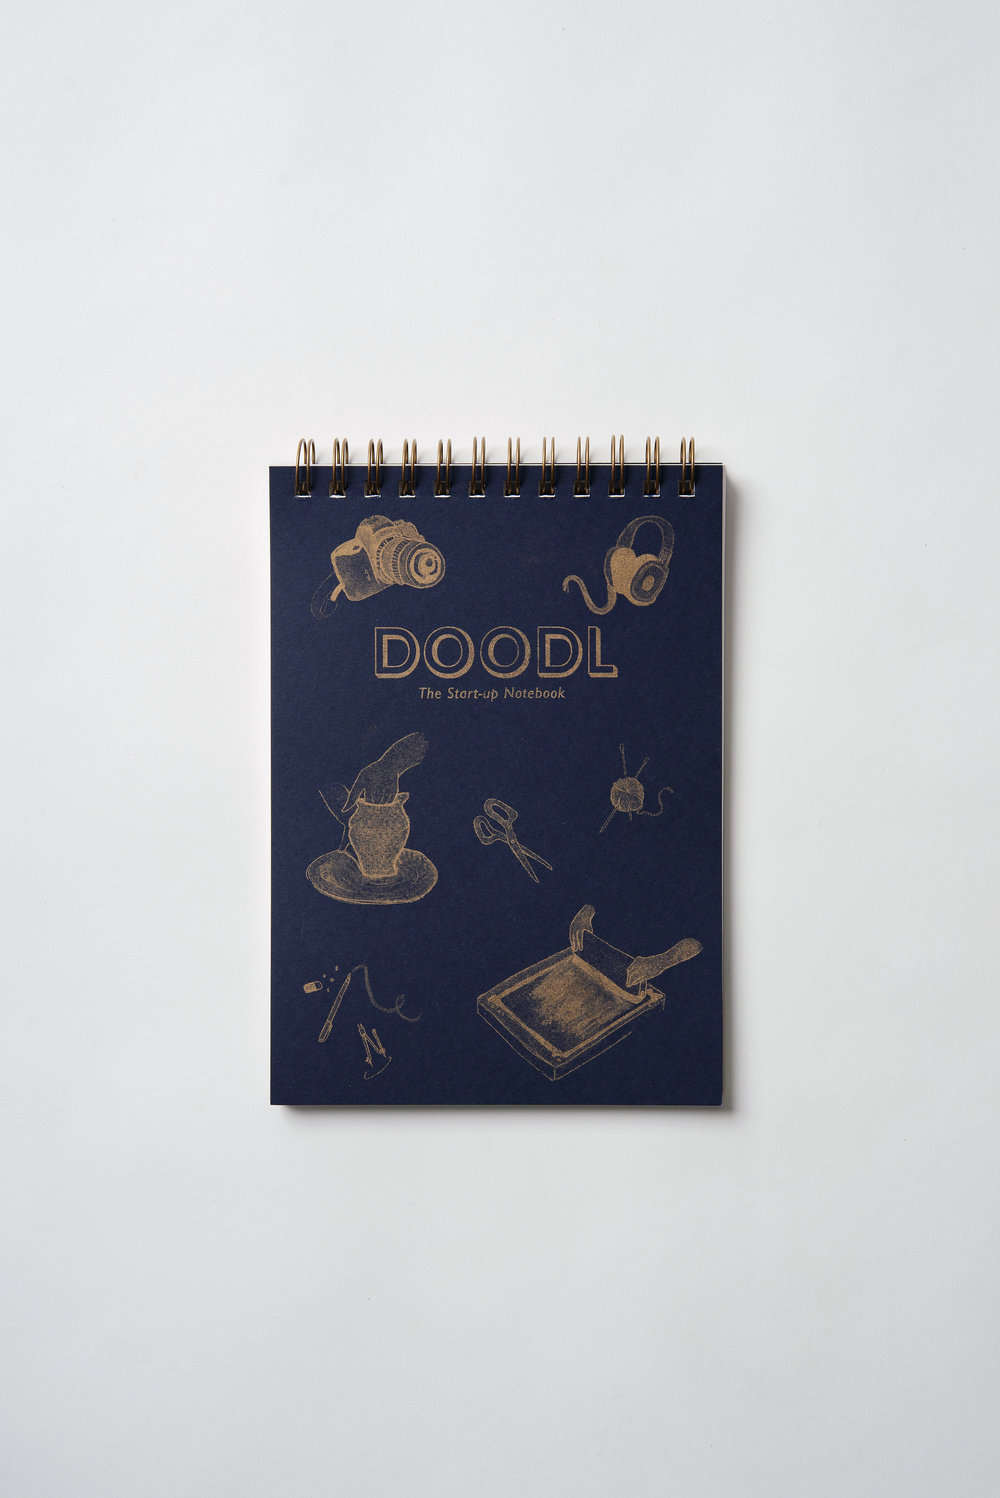 Doodl-Notebook-for-startups-RCF-21.jpg